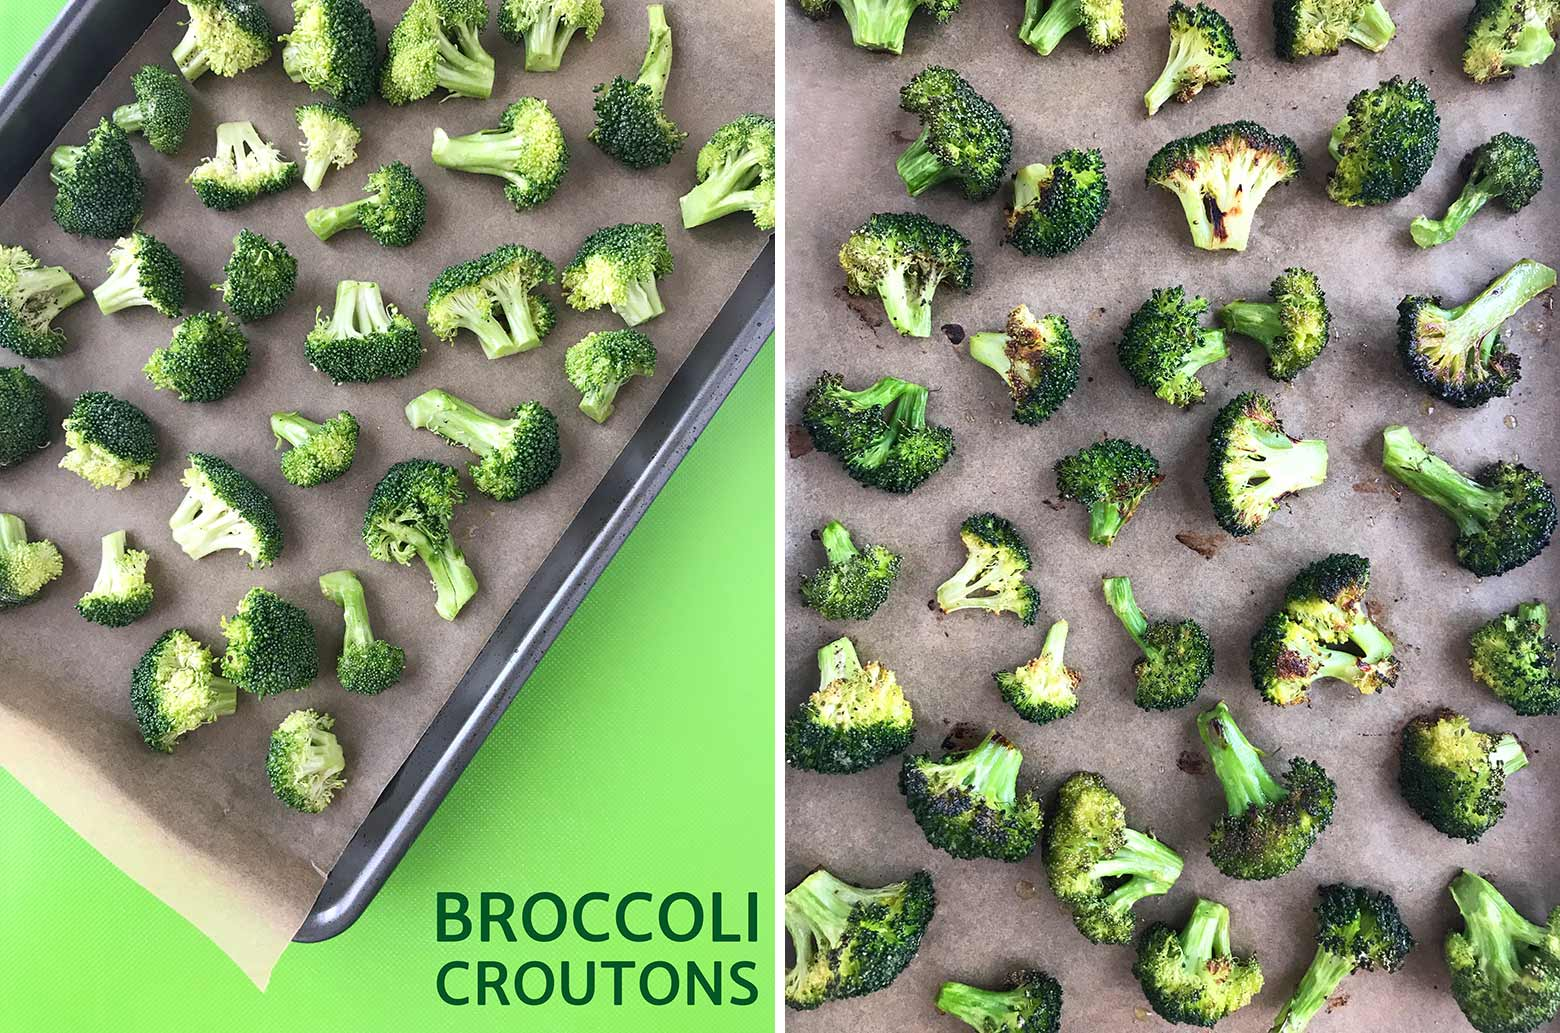 Shows chopped broccoli arranged on a baking sheet and roasted broccoli florets.